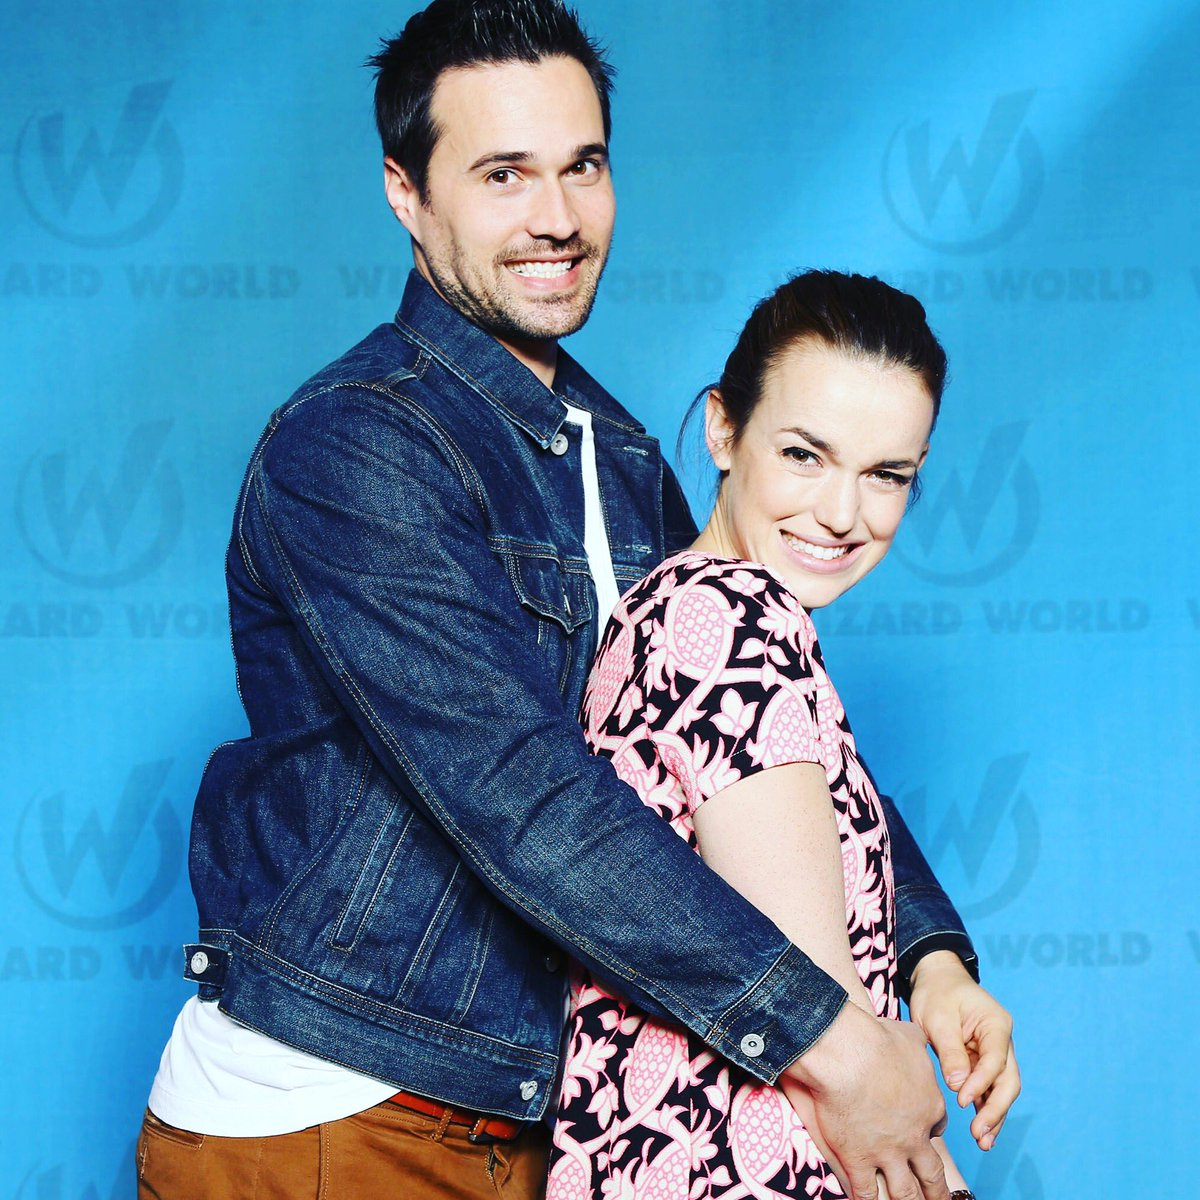 So excited @imbrettdalton and @lil_henstridge got in on the #awkwardprom fun at last weekend. U guys made me proud! https://t.co/owJpwzIhn2